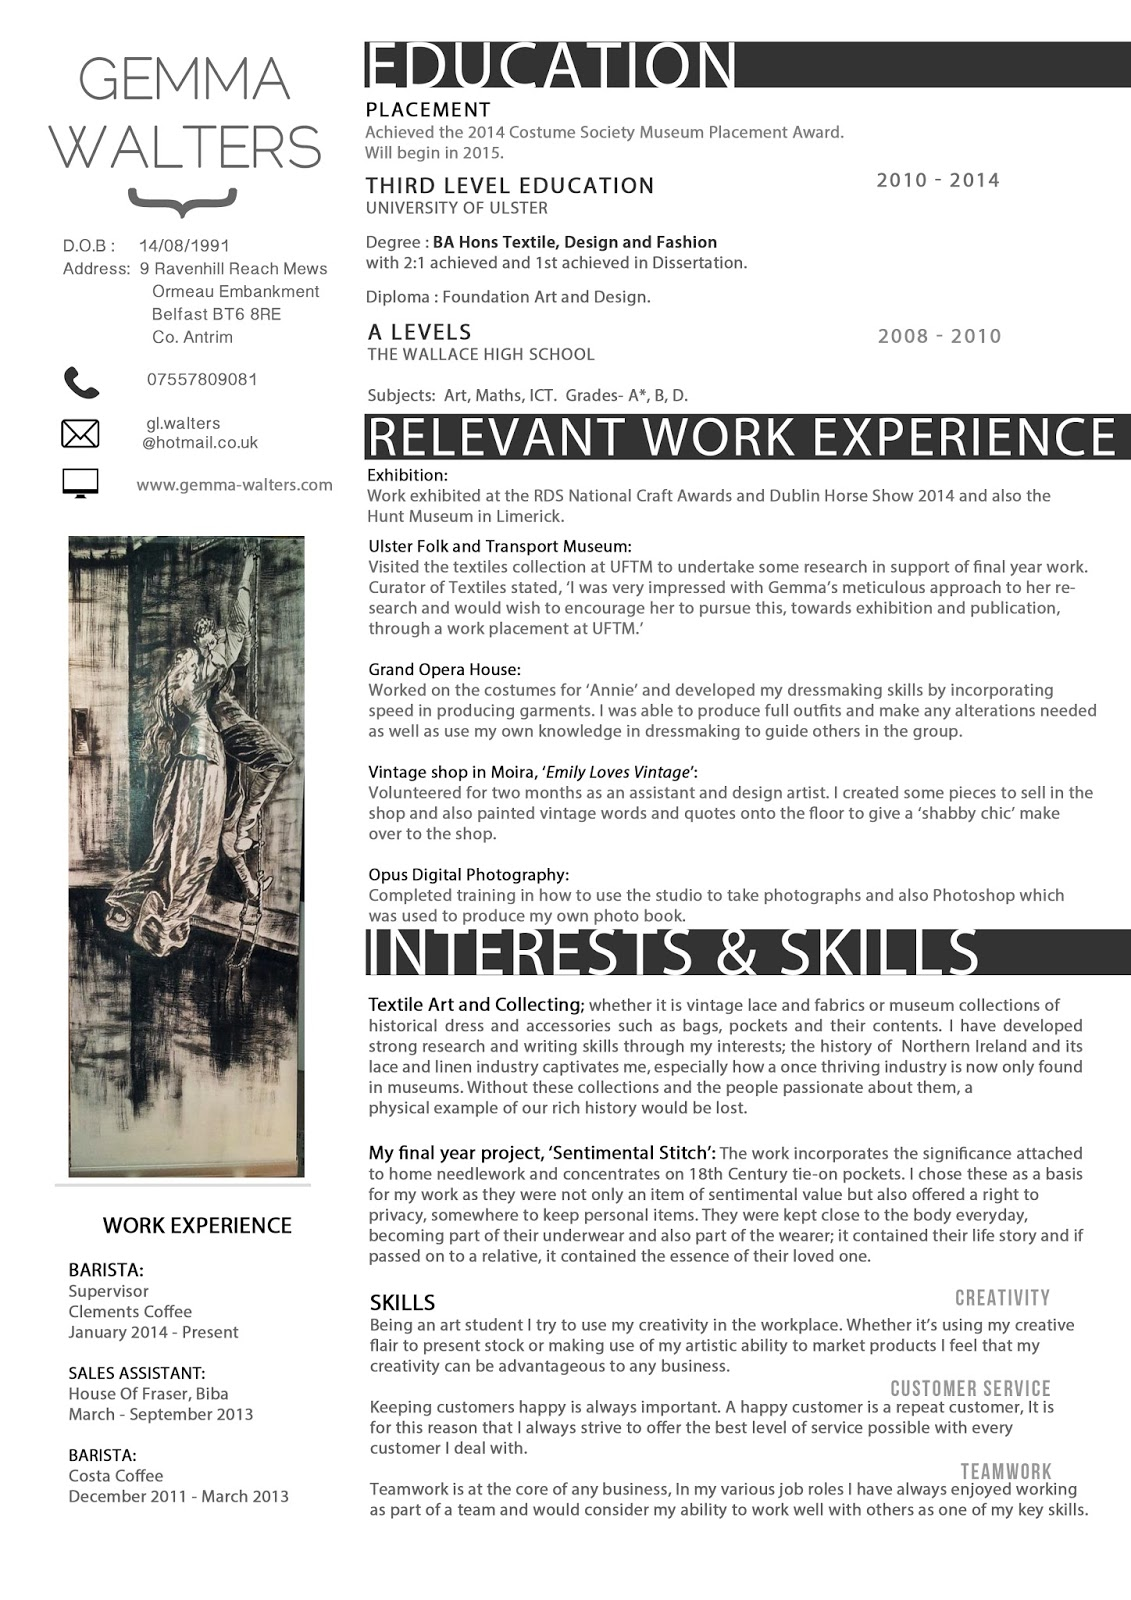 sample resume for web designer experienced possessions sample resume for web designer experienced possessions